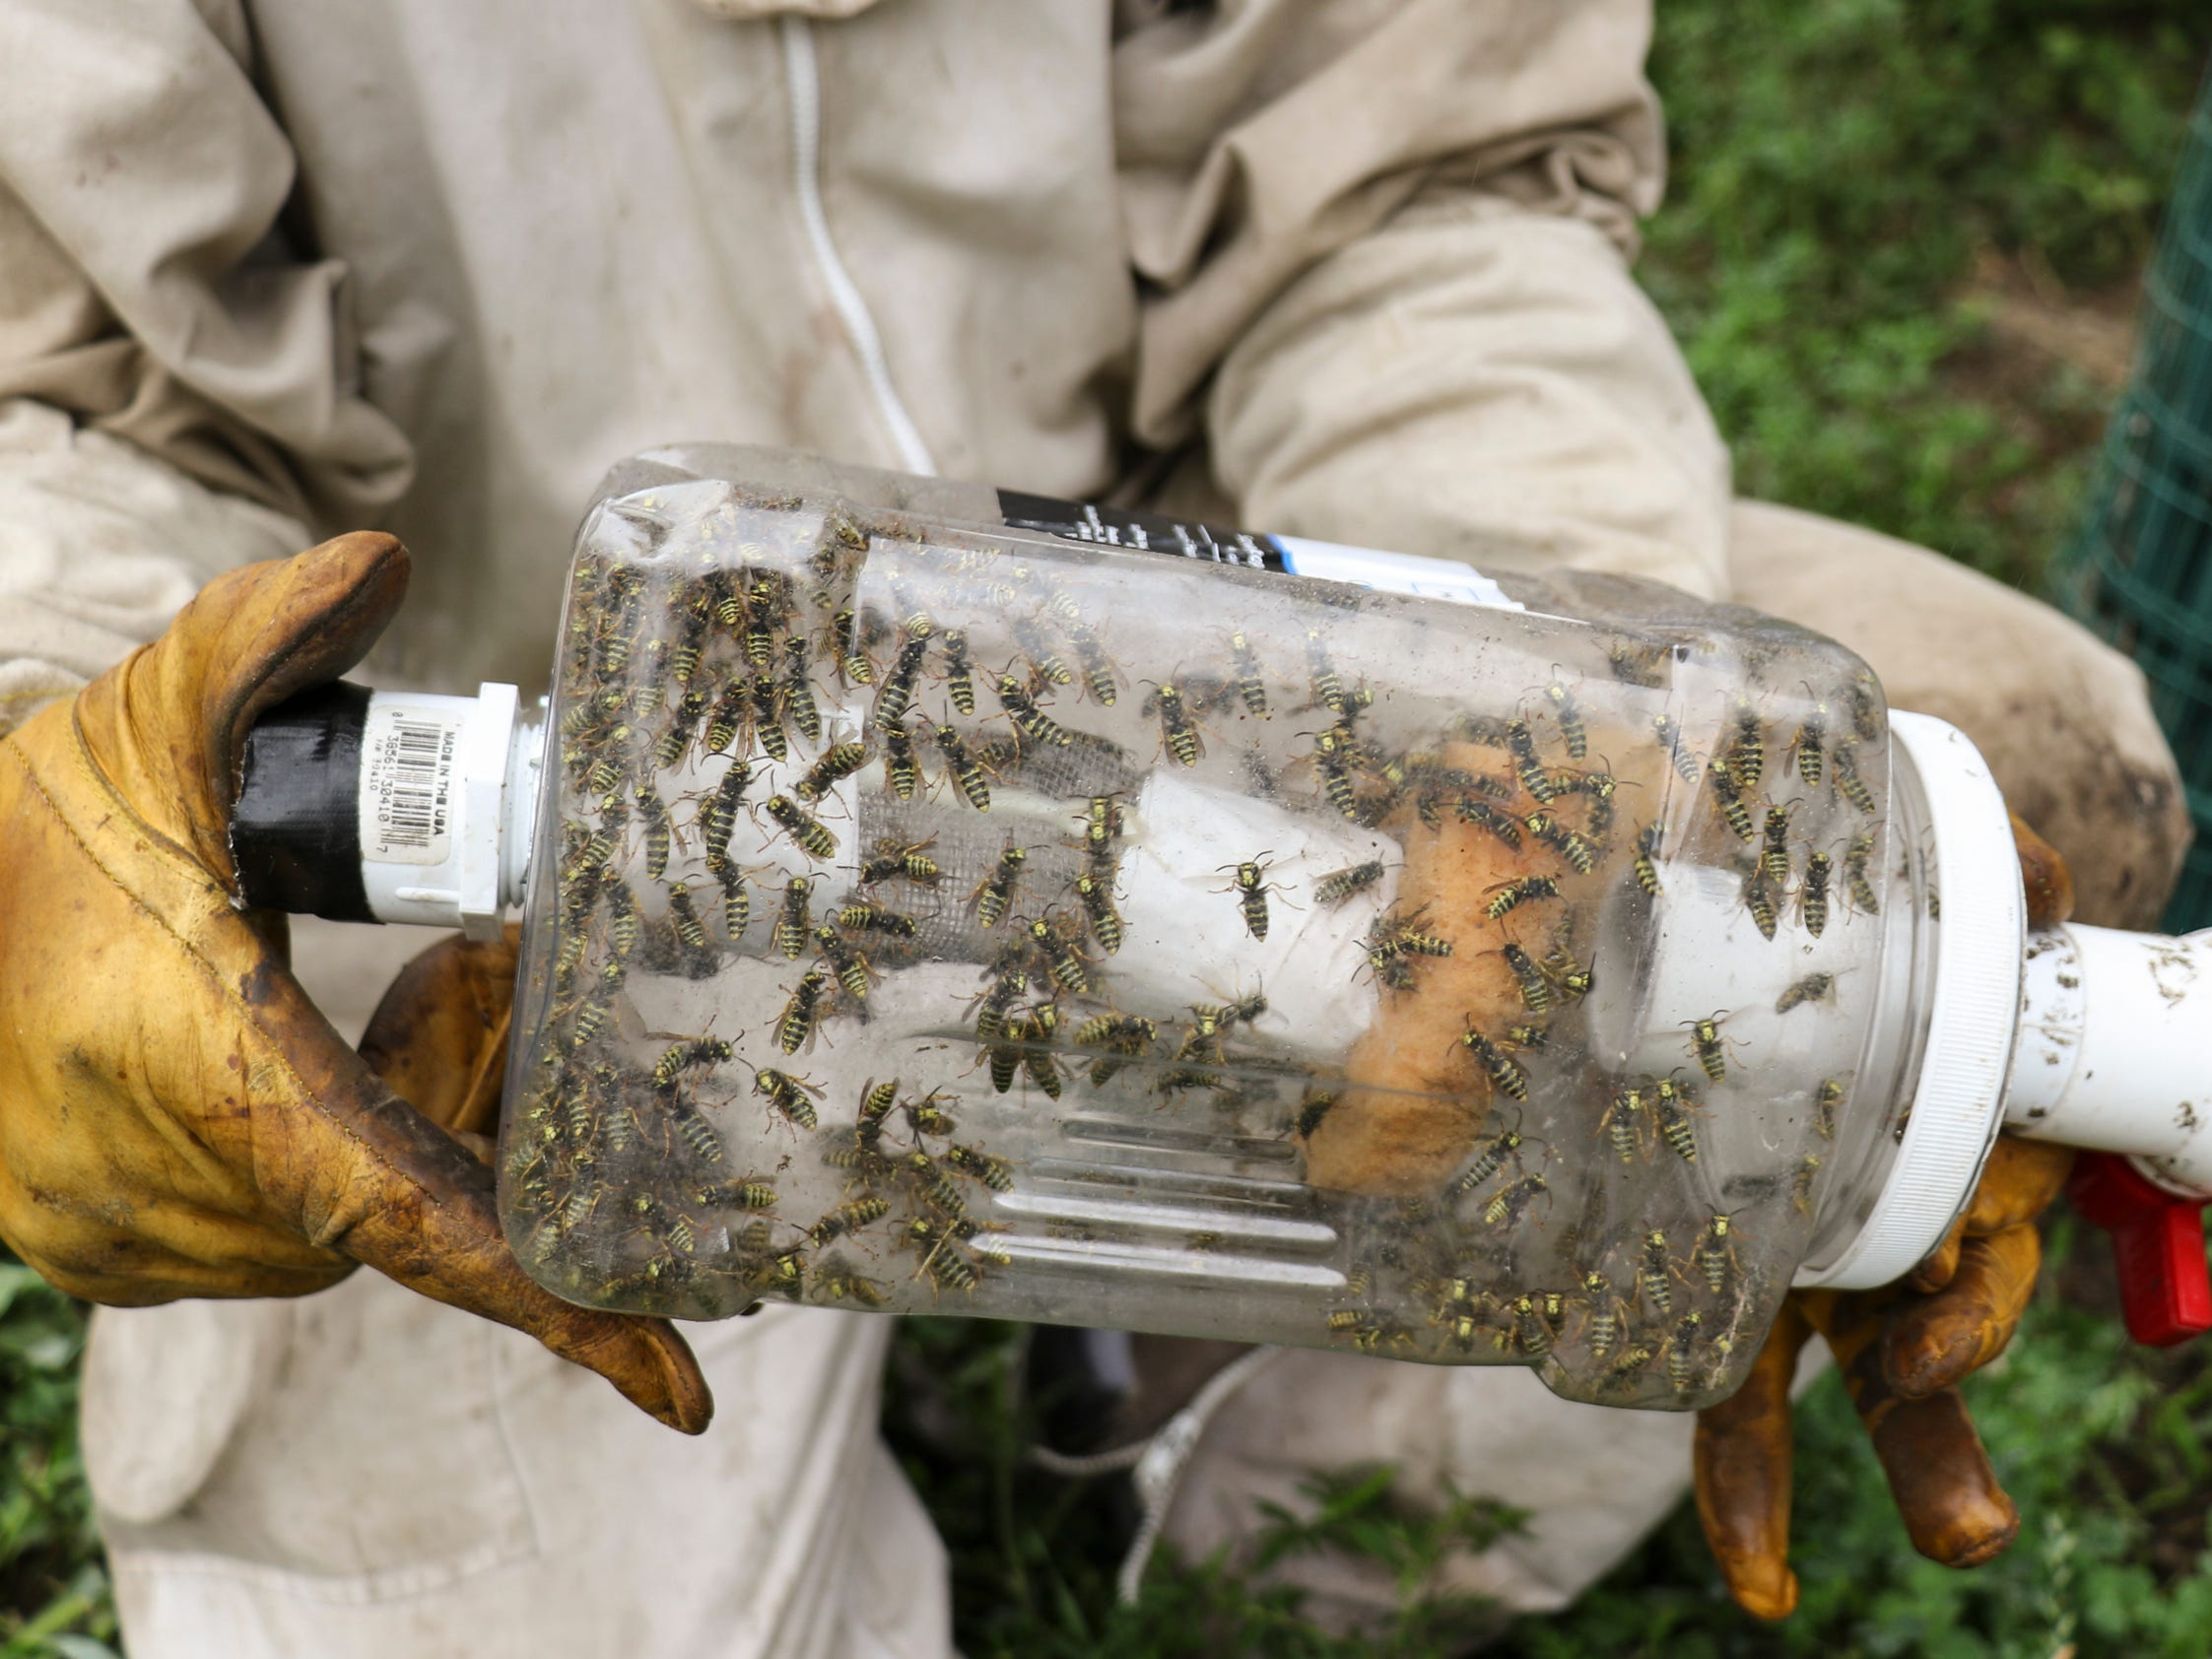 Travis Rockafellow of Perry used a gasoline-powered vacuum to suck up these hornets from a nest in rural Haslett, Thursday, Aug. 16, 2018.  He will take the nest and hornets, put them on ice, and ship them to a lab that extracts the venom for immunotherapy use.